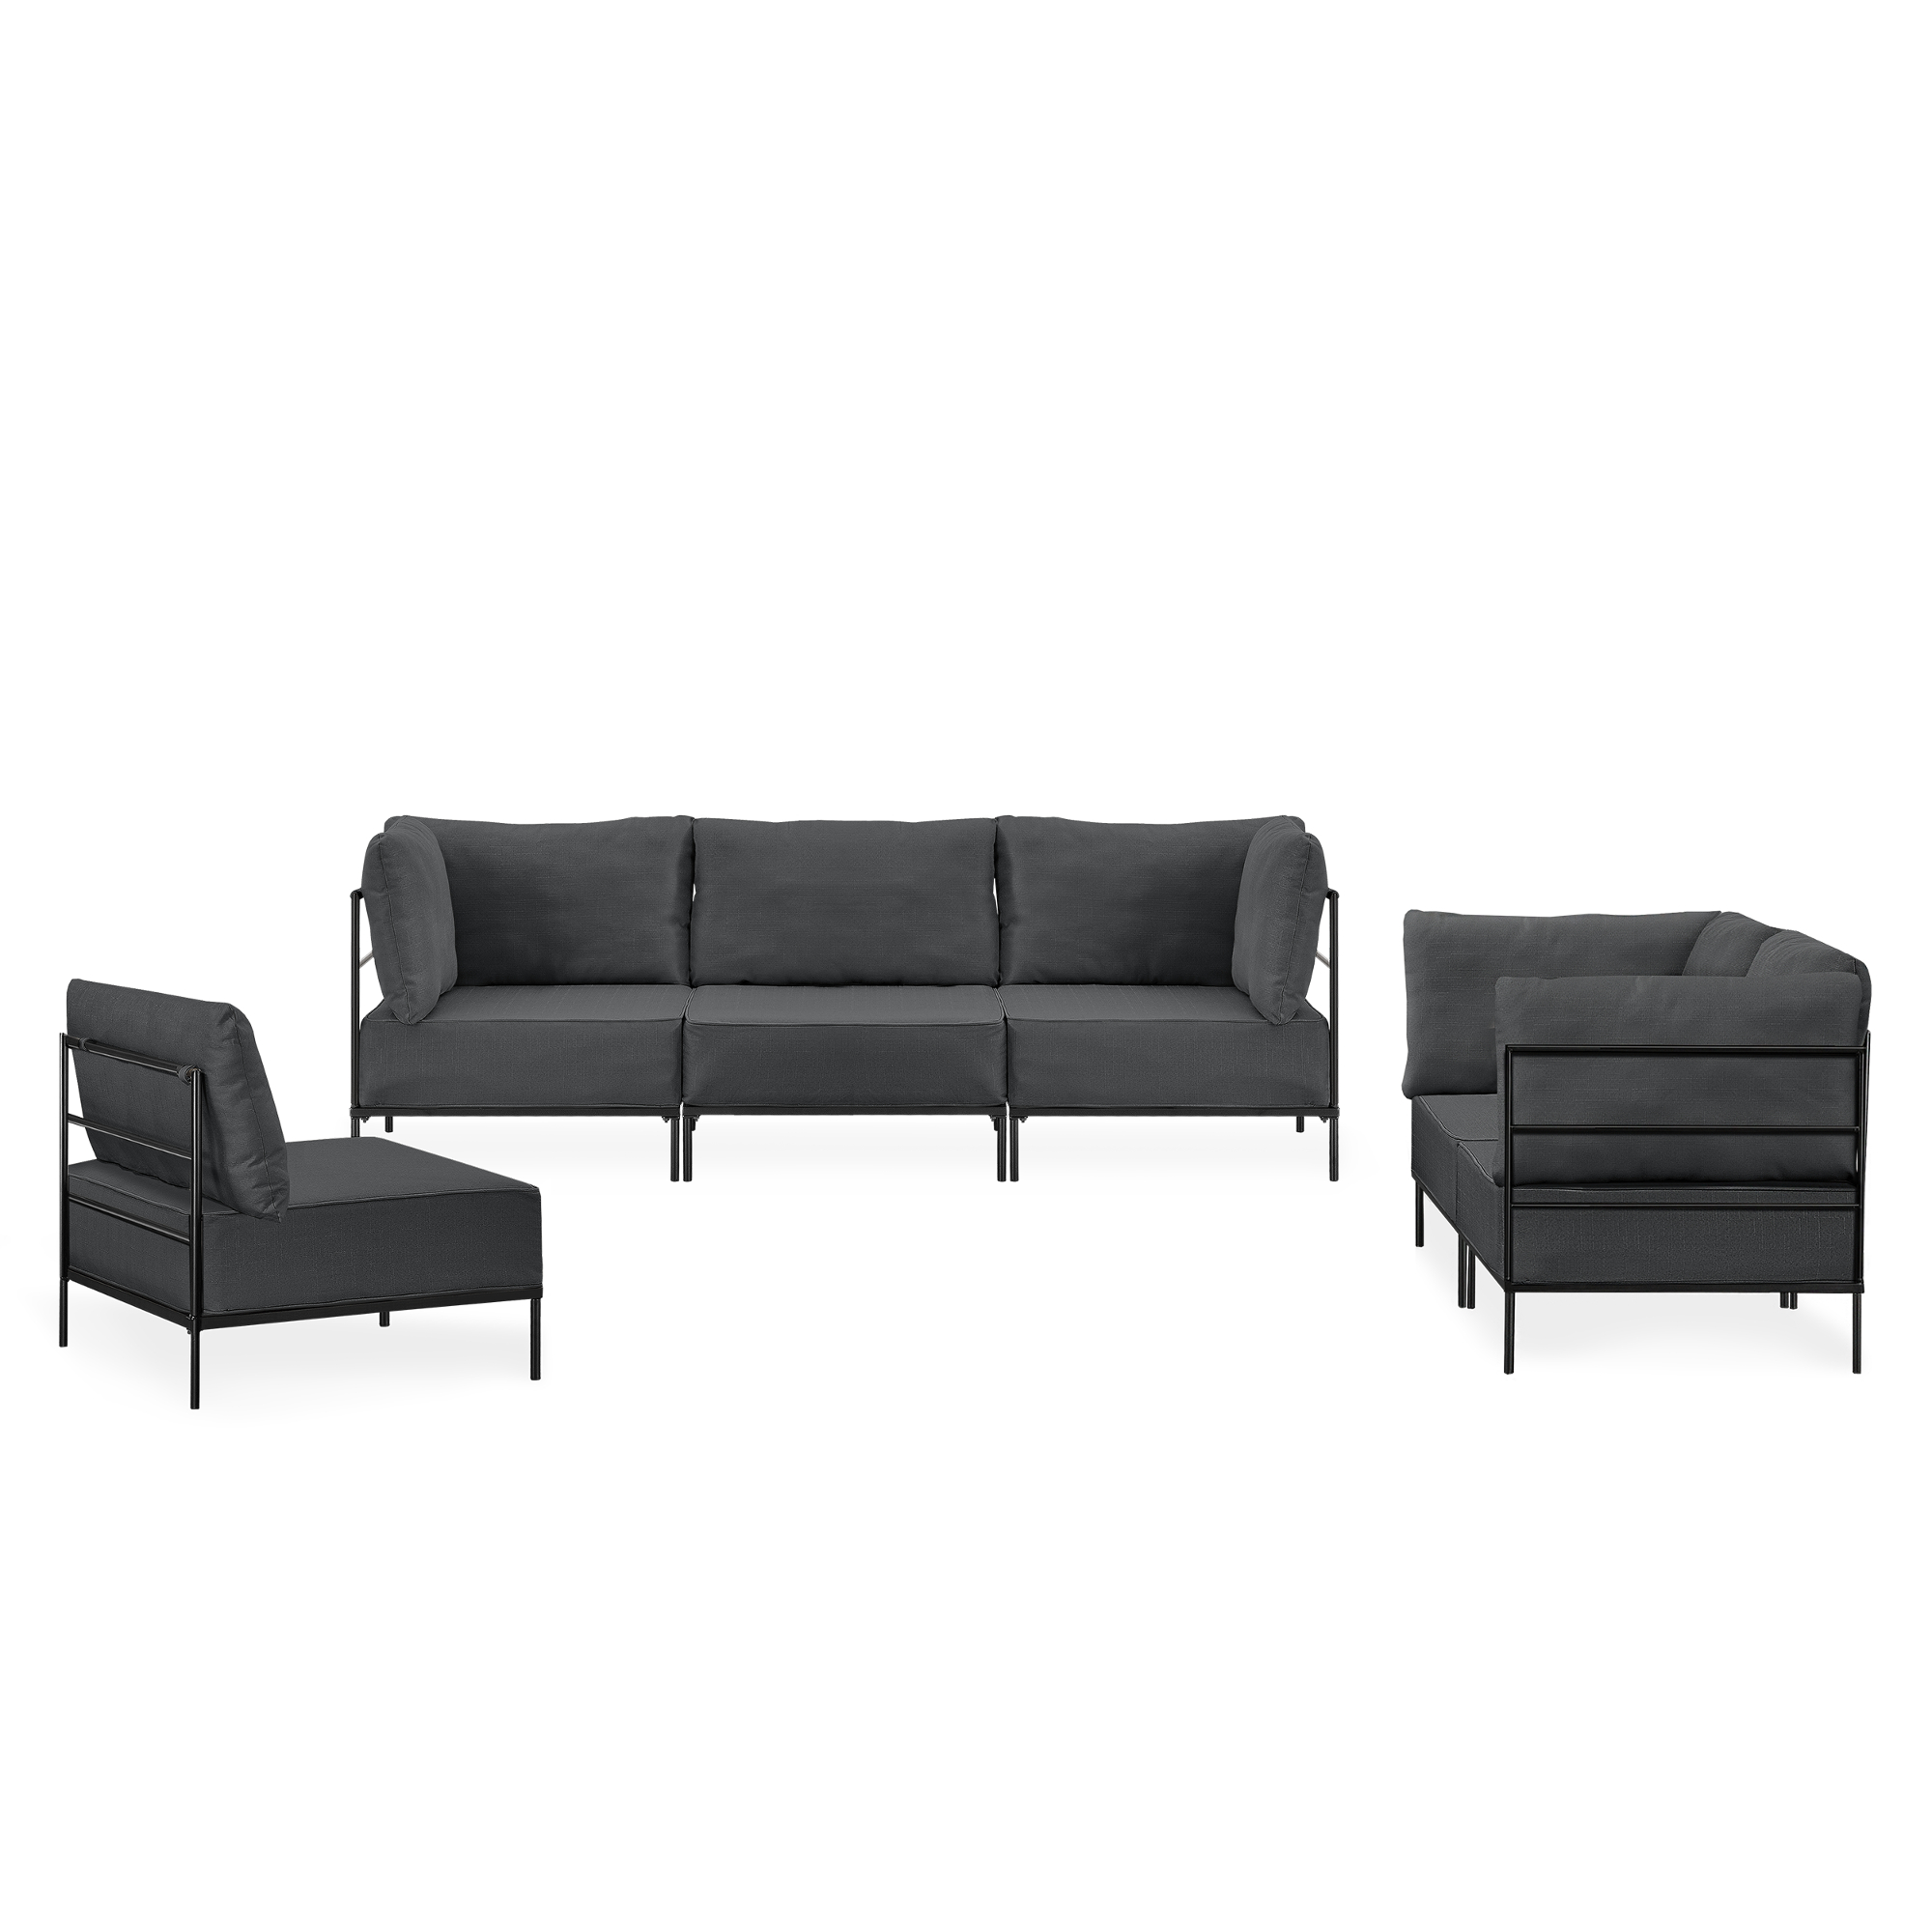 sofa sessel kombination awesome large size of roller schlafsofa enrico daru grun poco muritz. Black Bedroom Furniture Sets. Home Design Ideas